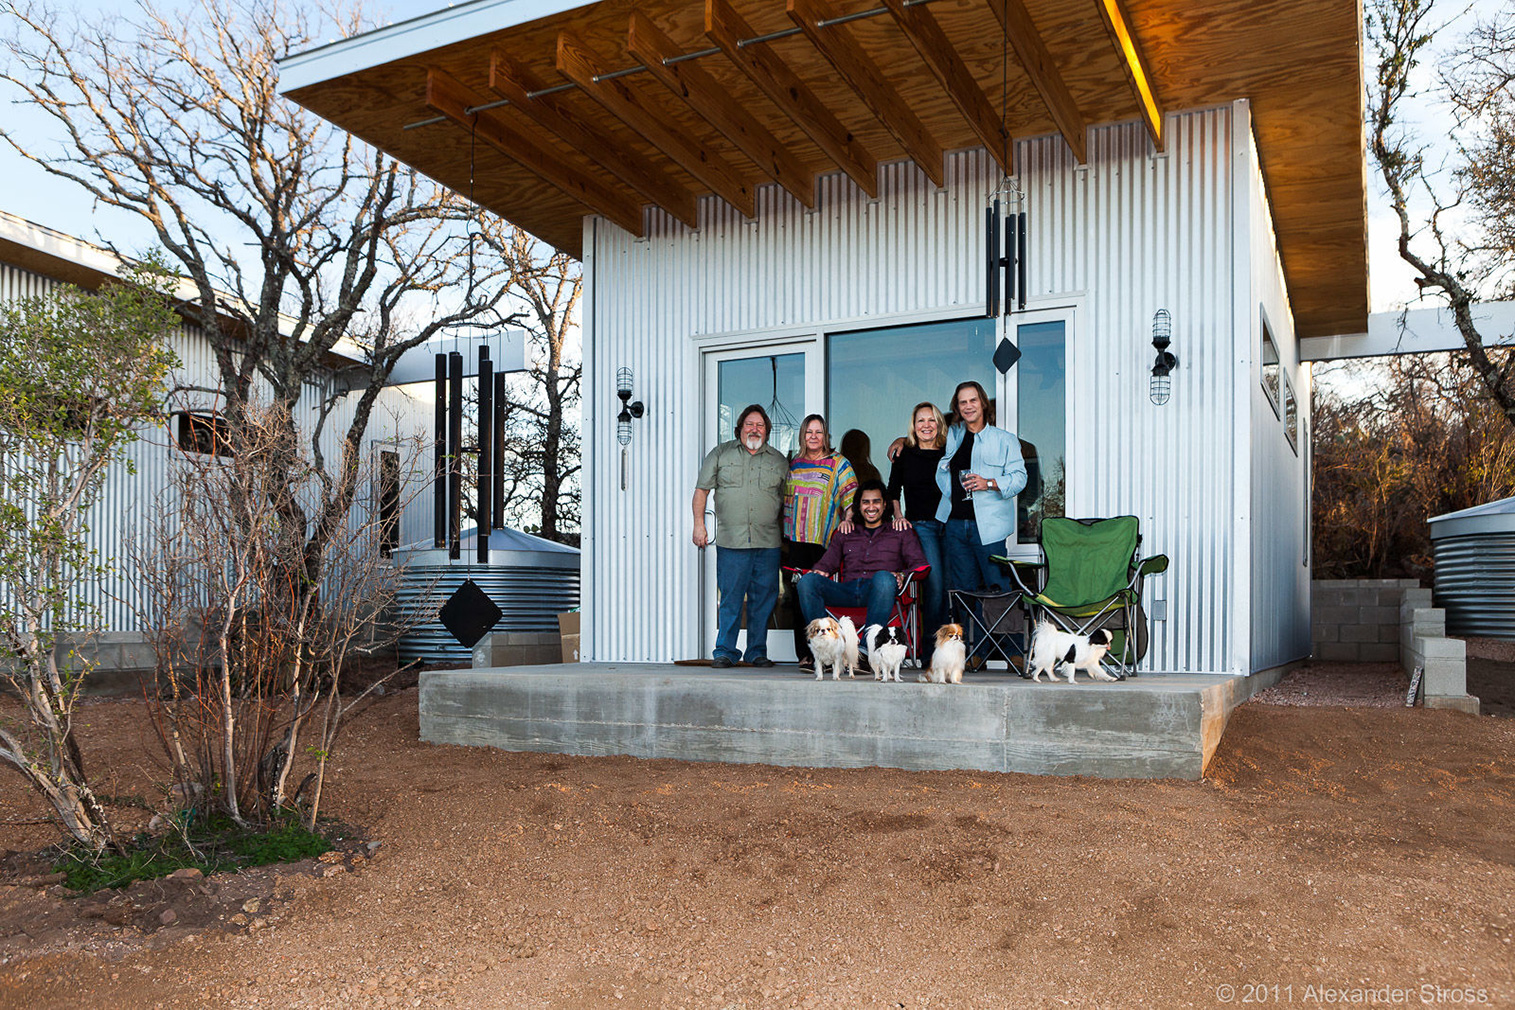 Best Row tiny houses in Texas